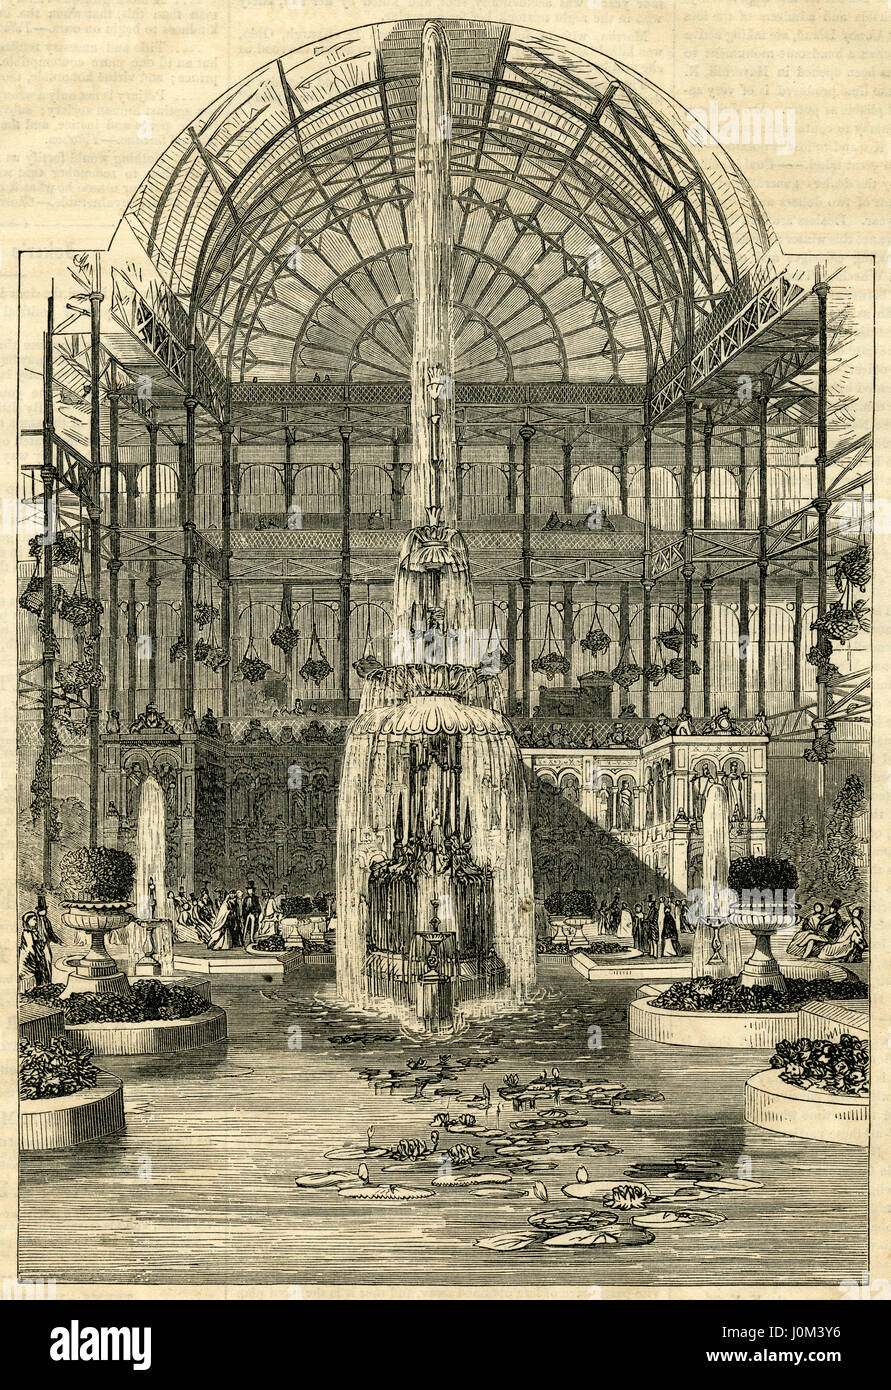 The Crystal Palace moved to Sydenham Hill in 1854. When completed, The  Crystal Palace provided an unrivaled space for exhibits.